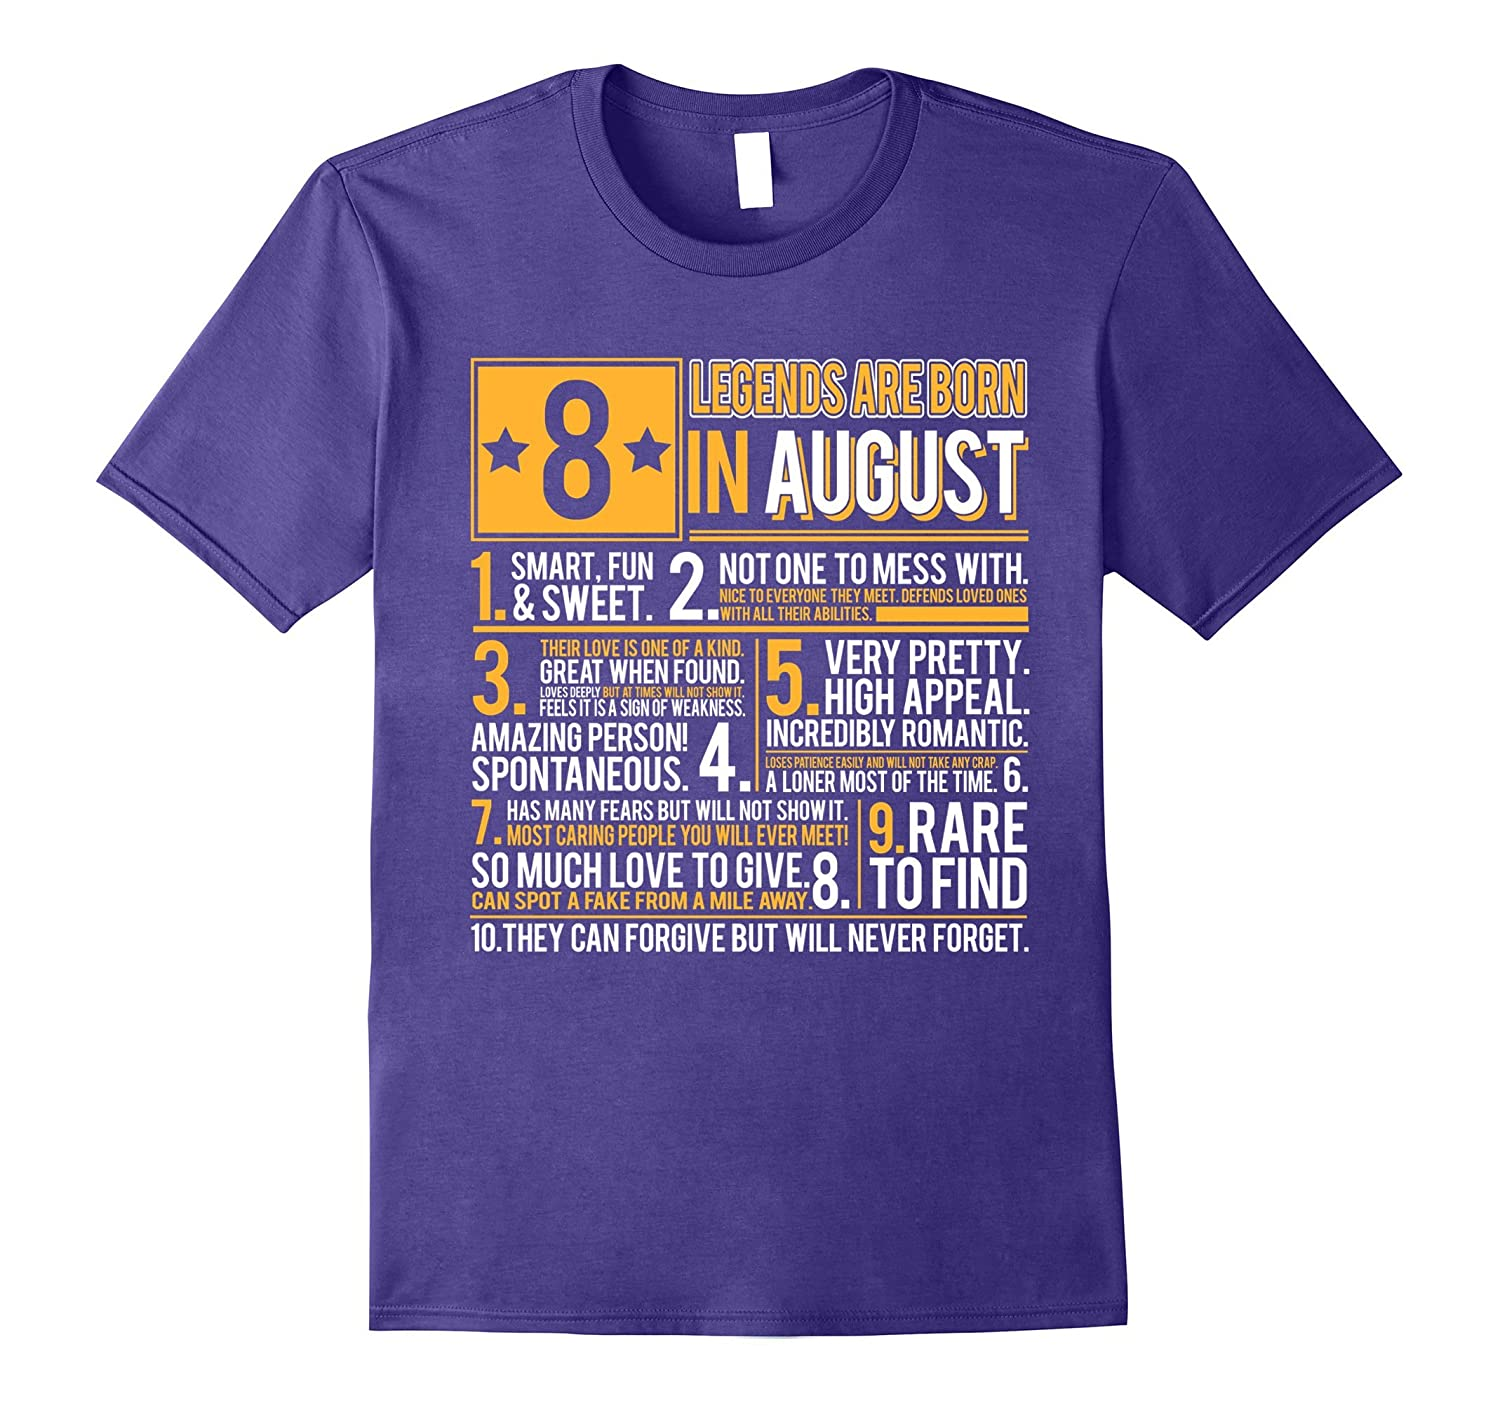 Legends are born in August T-Shirt Leo Pride-BN